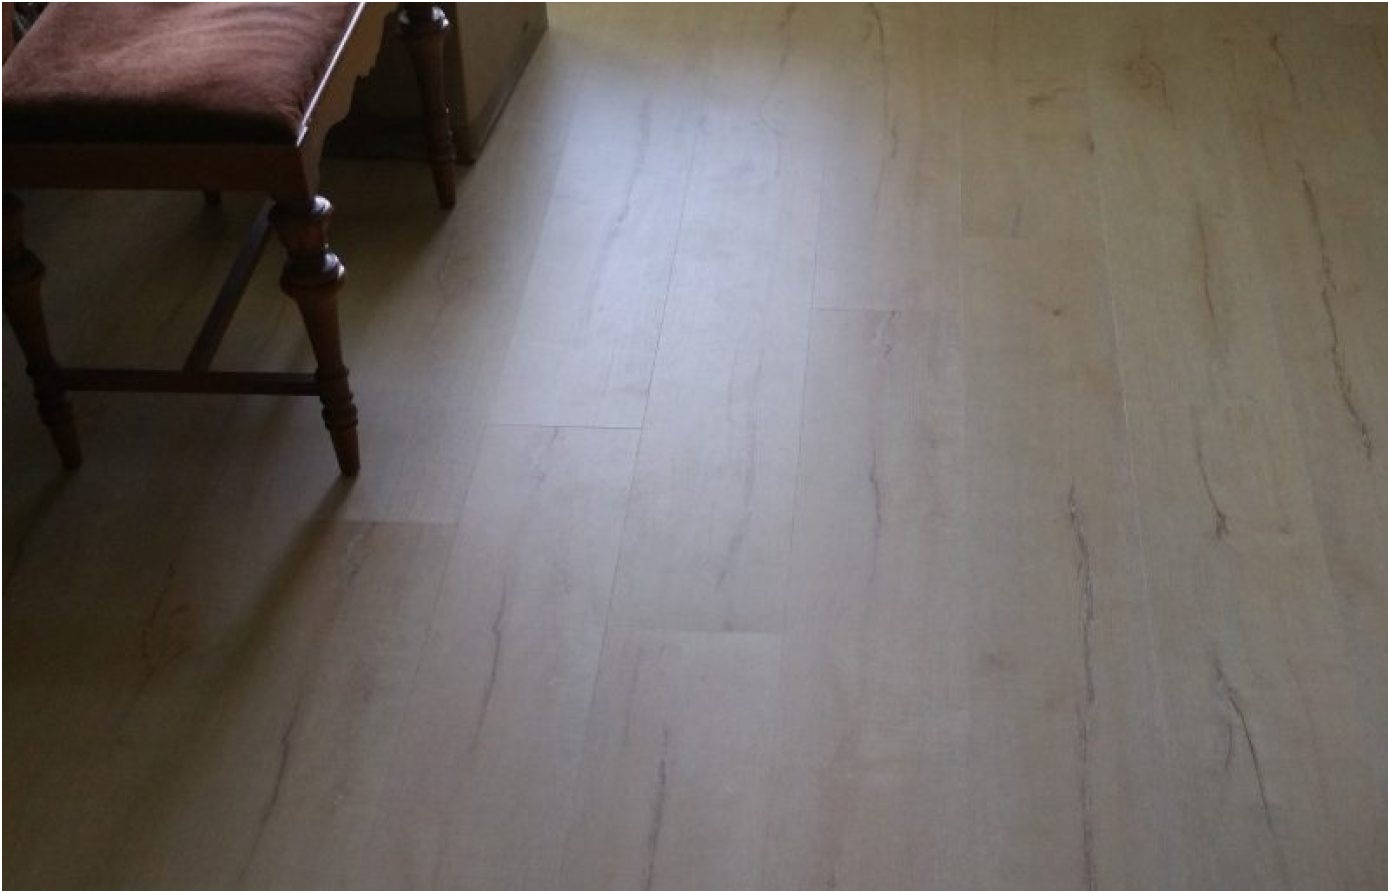 Hardwood Flooring Facts Of How to Not Be Awkward Flooring Design Ideas Throughout 30 Awesome How to Clean Allure Vinyl Plank Flooring Collection